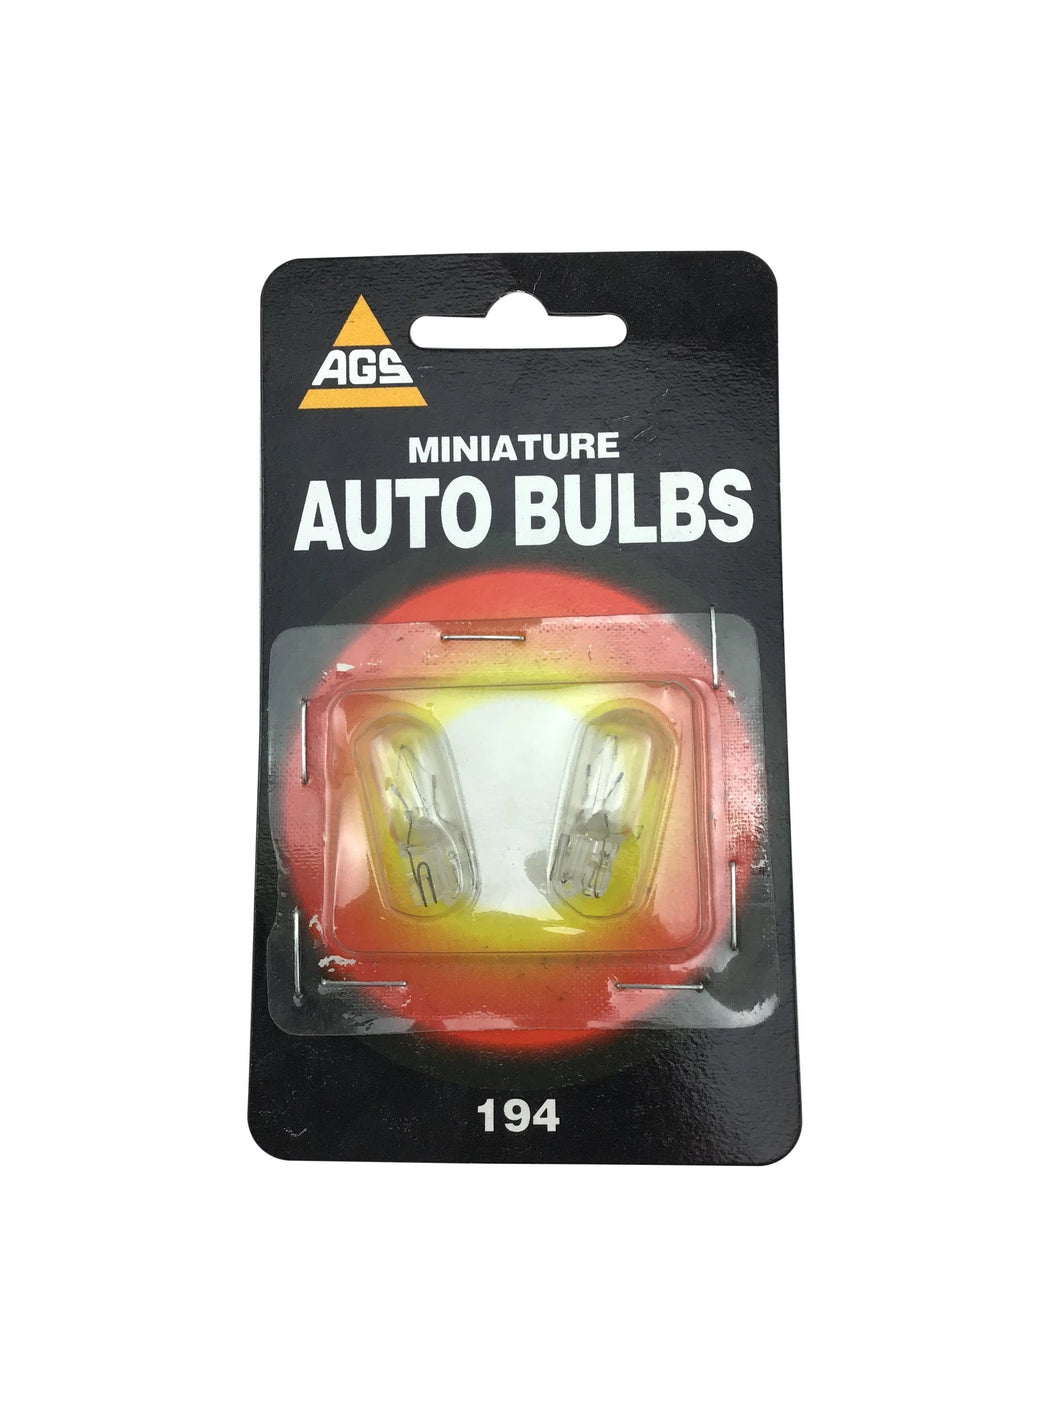 Ags Miniature Auto Bulbs for Indicators and Instruments-automotive-Tool Mart Inc.